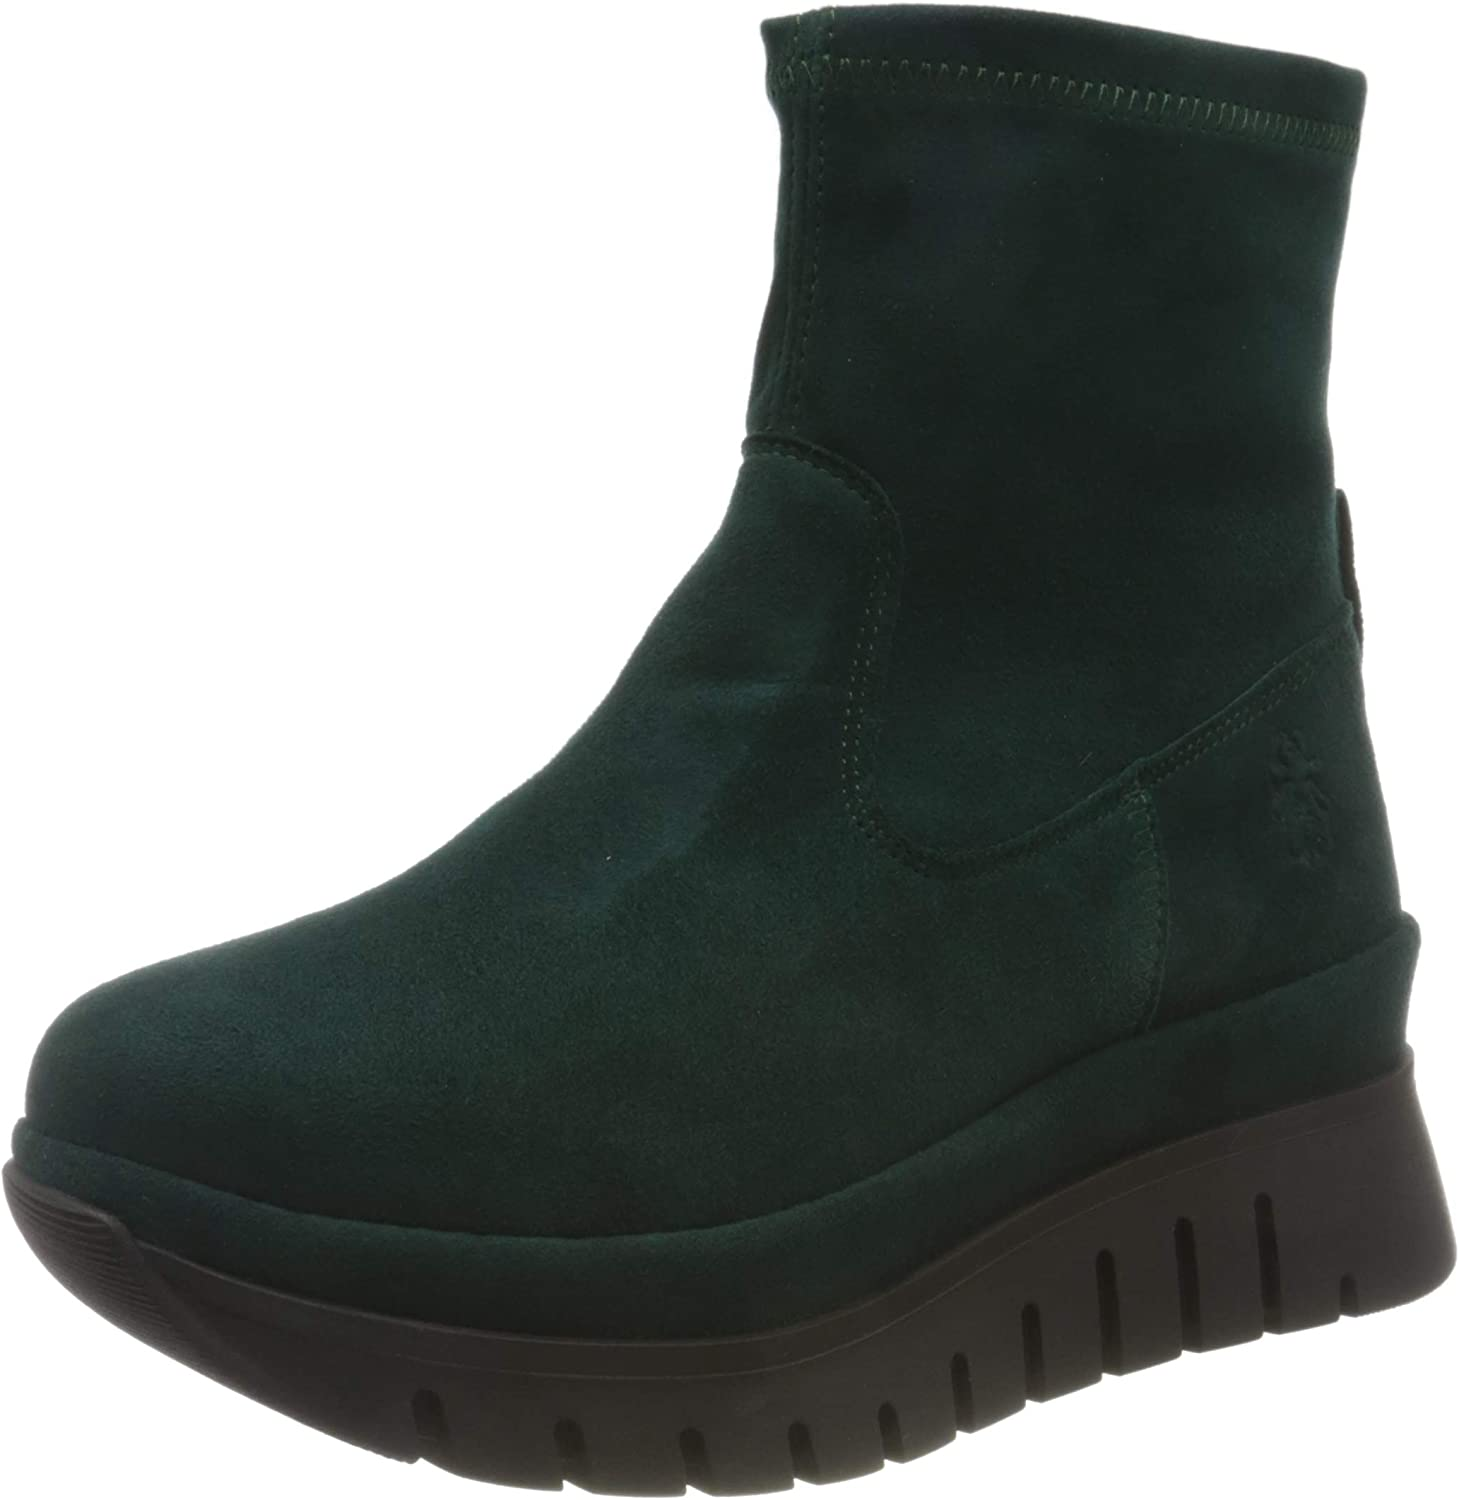 Daily bargain sale FLY LONDON Women's BORK060FLY Max 63% OFF Ankle 2 Boot Green Forest